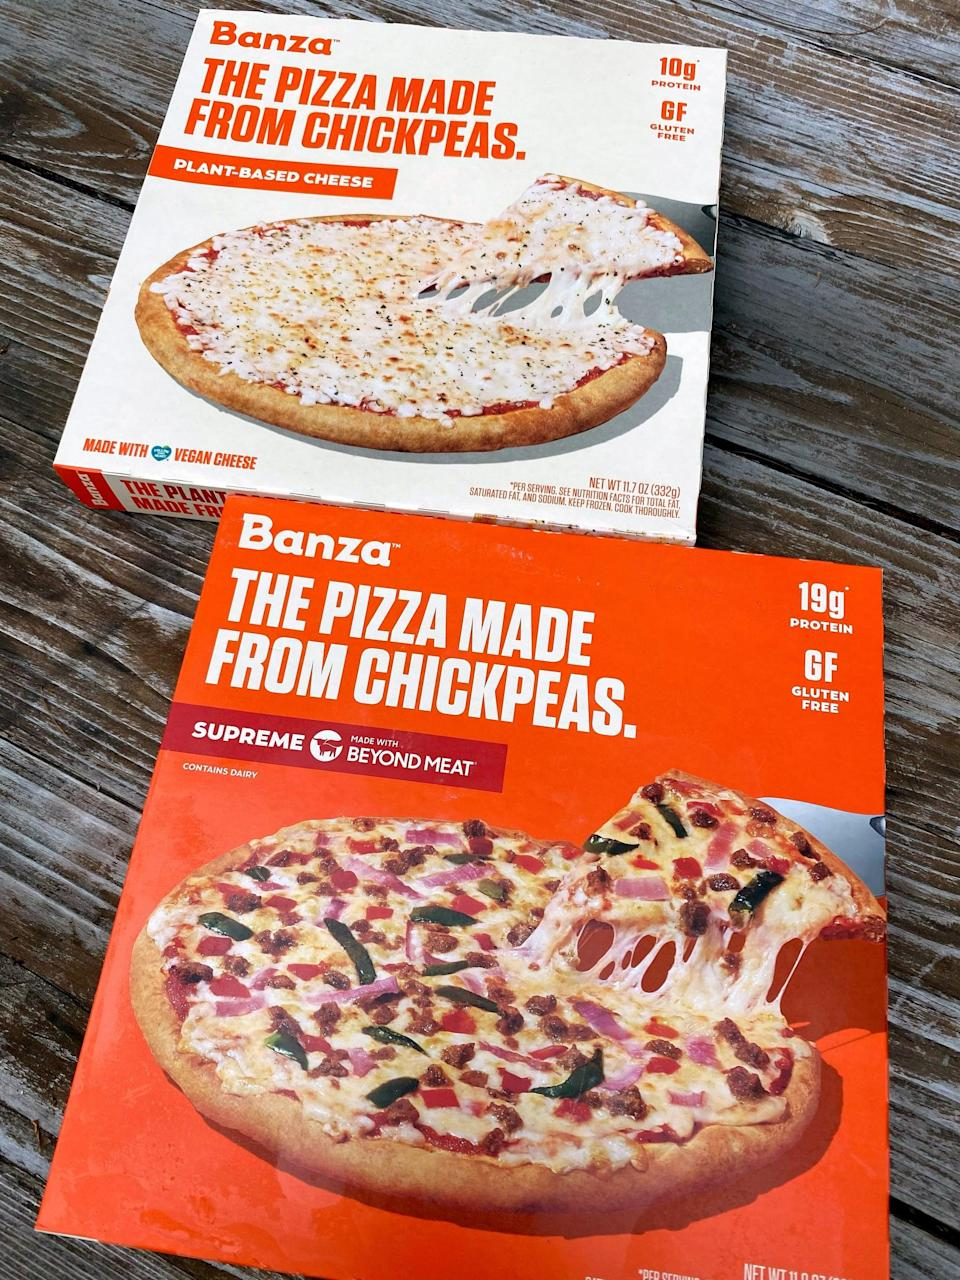 """<p>Both the Banza Plant-Based Cheese and the Supreme frozen pizzas cost $8.99 each. You can find them at Kroger, Market Basket, Thrive Market, <a href=""""https://www.amazon.com/Banza-Roasted-Veggie-Frozen-Chickpeas/dp/B09GPTQ5PK?th=1"""" class=""""link rapid-noclick-resp"""" rel=""""nofollow noopener"""" target=""""_blank"""" data-ylk=""""slk:Amazon"""">Amazon</a>, and on the <a href=""""https://www.eatbanza.com/collections/pizza"""" class=""""link rapid-noclick-resp"""" rel=""""nofollow noopener"""" target=""""_blank"""" data-ylk=""""slk:Banza website"""">Banza website</a>. If you're looking for a quick meal to keep in your freezer, I'd 100 percent recommend these.</p>"""